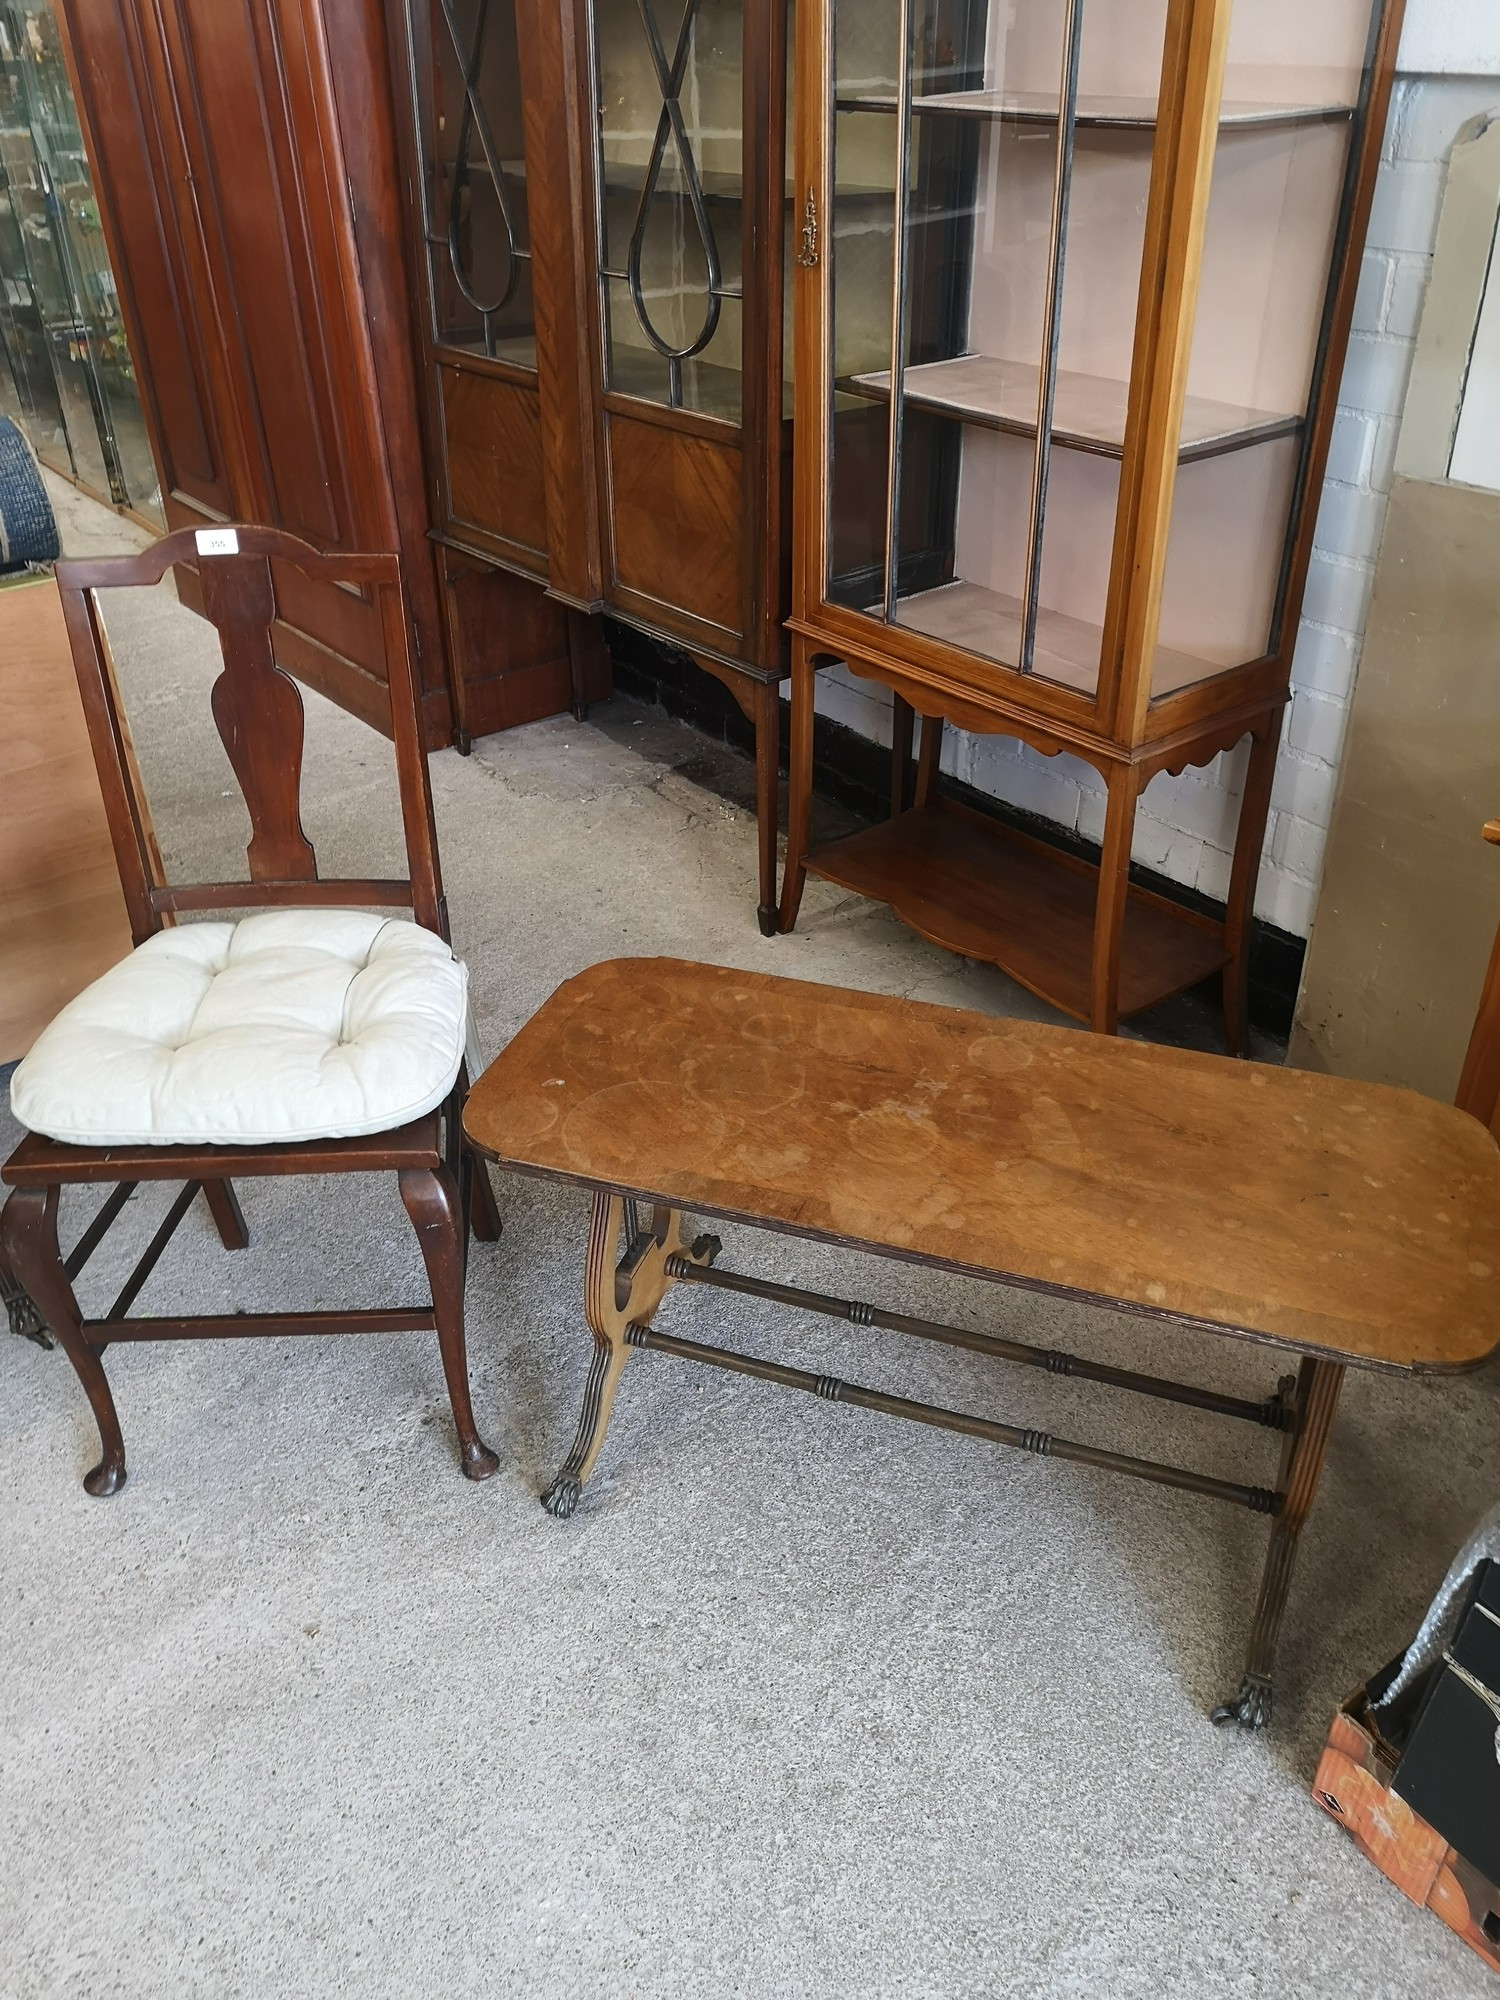 Vintage liar shaped end table with brass feet together with vintage chair.